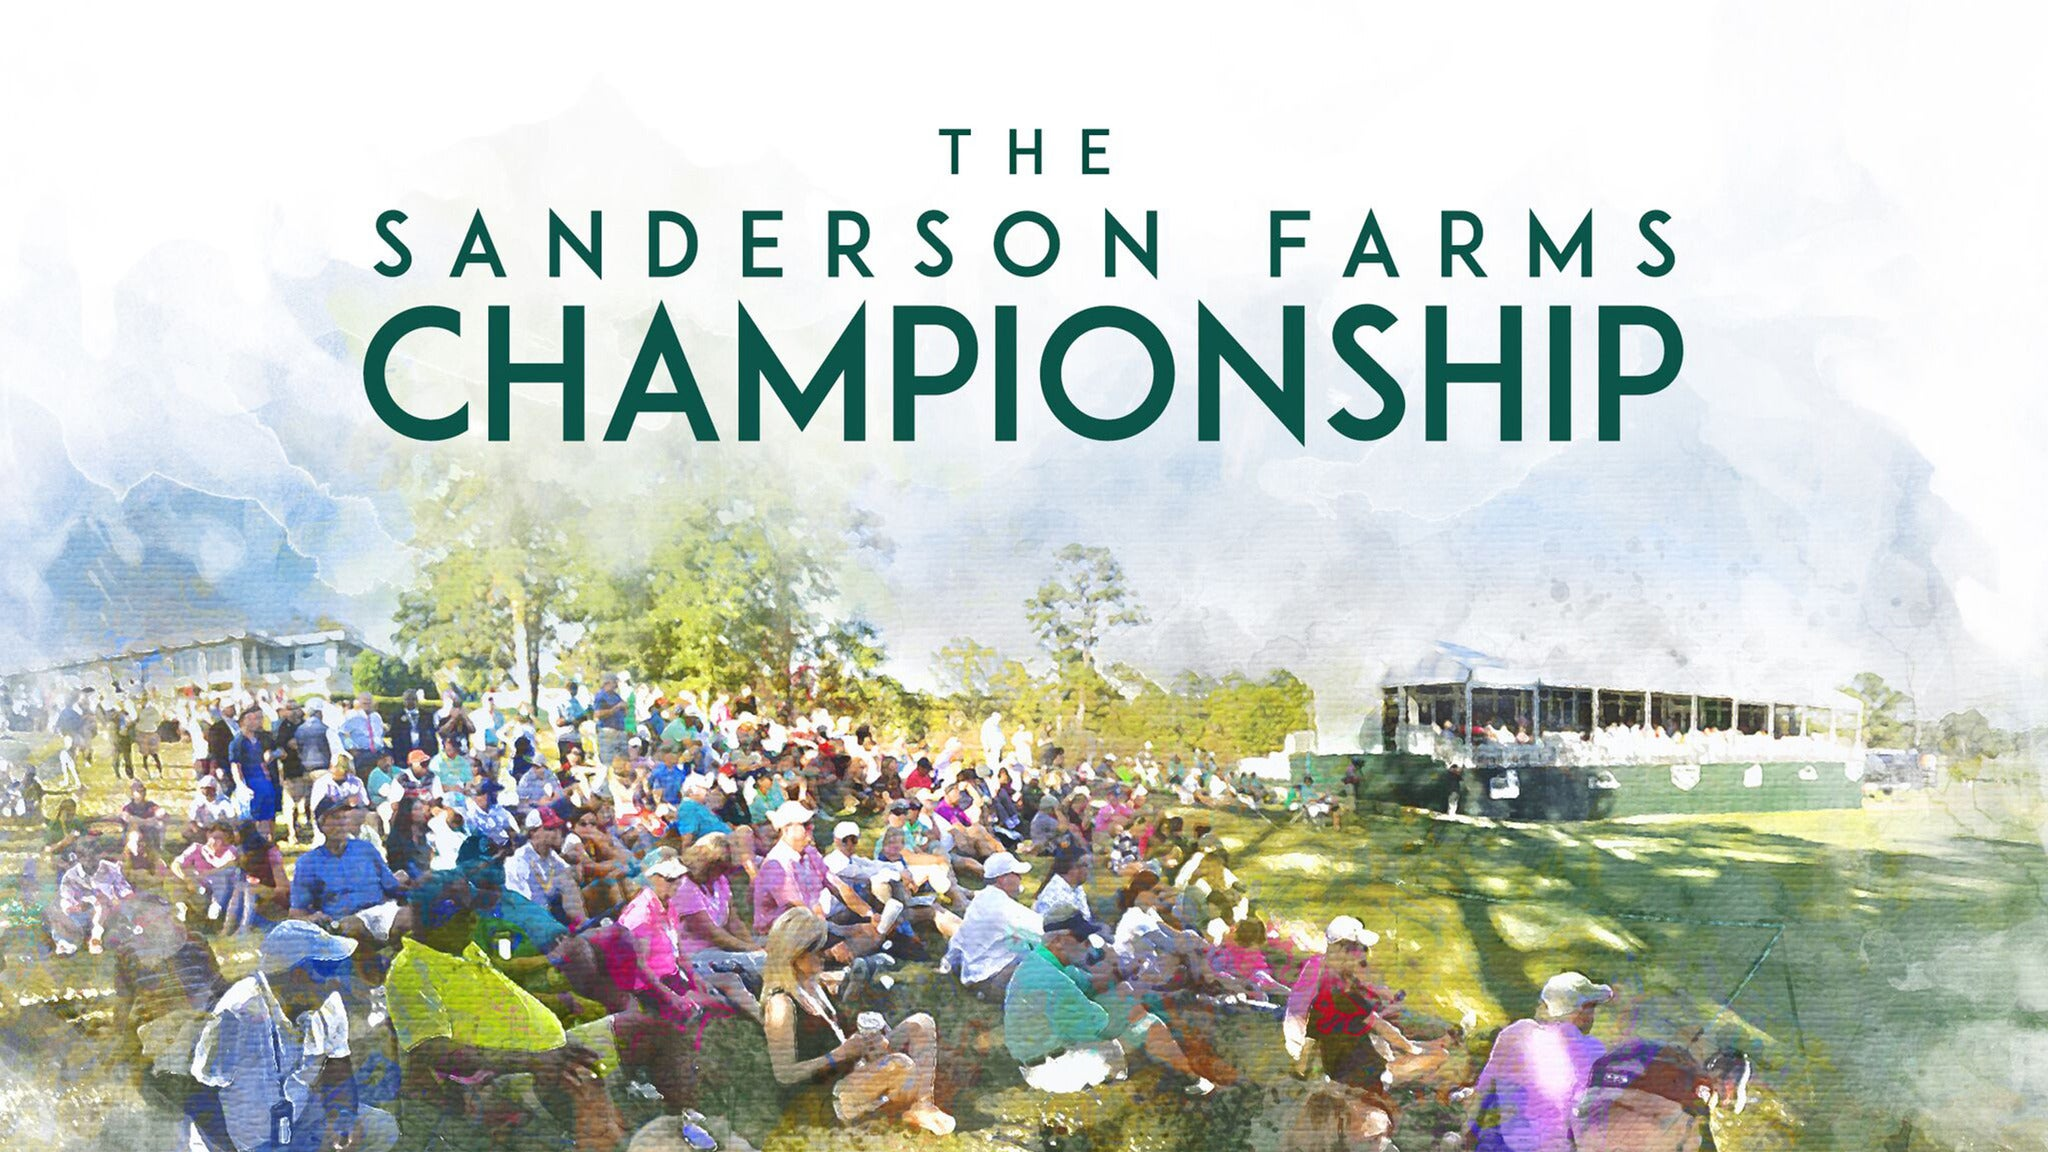 Sanderson Farms Championship - Friday Admission